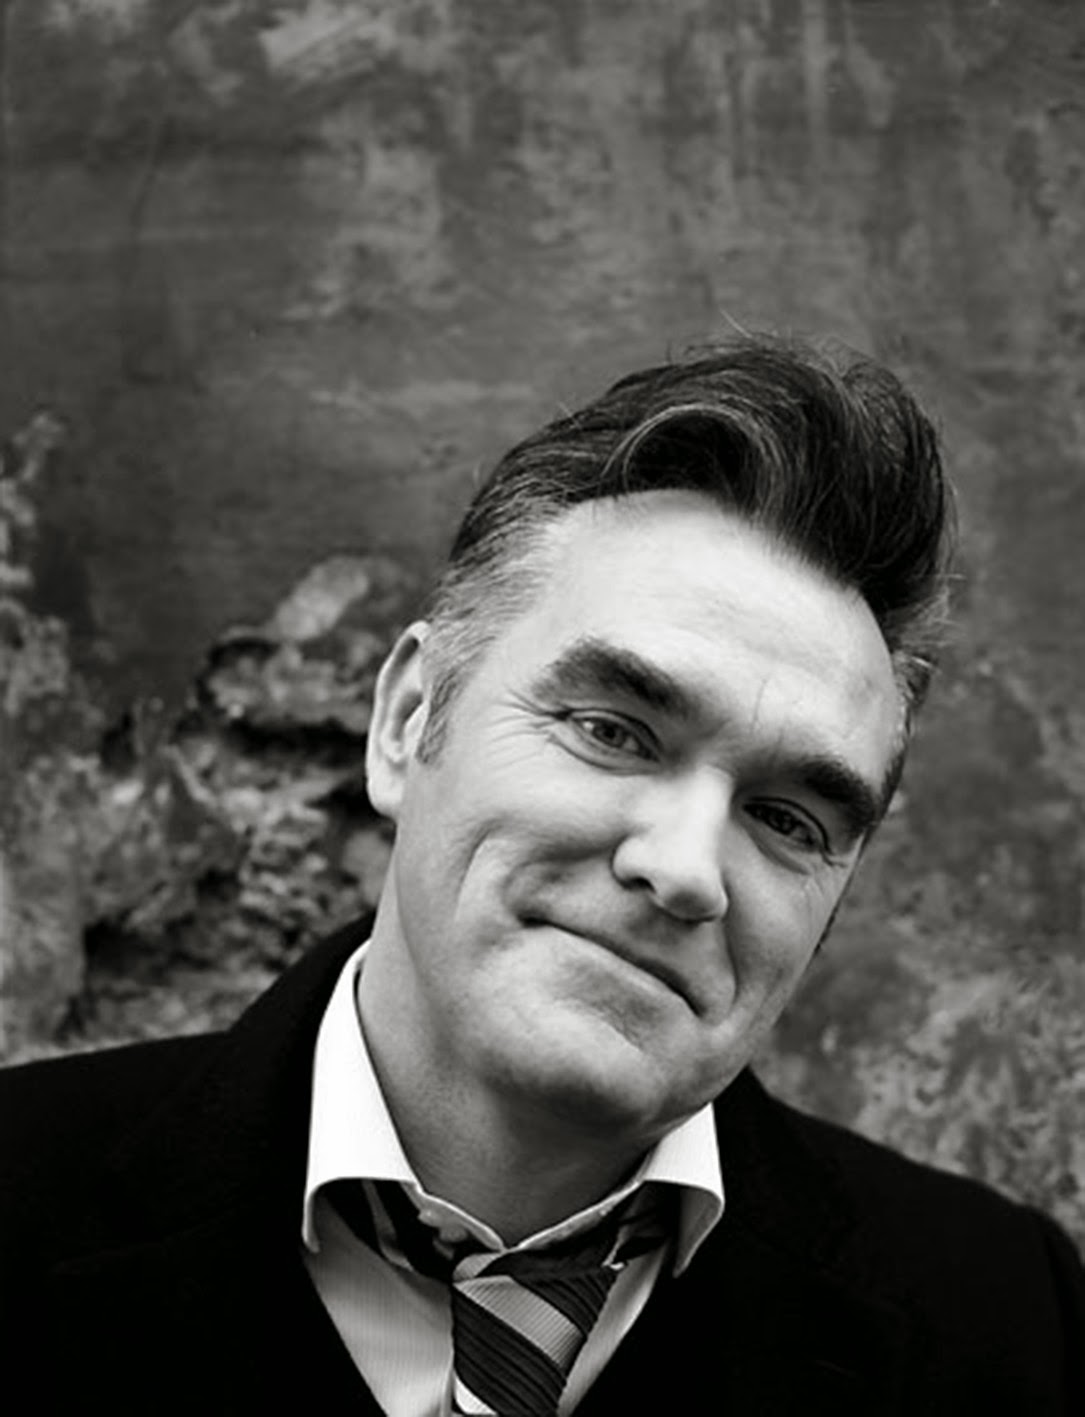 following the mozziah don t worry there is more parody jesse returned to the th anon morrissey is author marr is servant morrissey was great at glasto